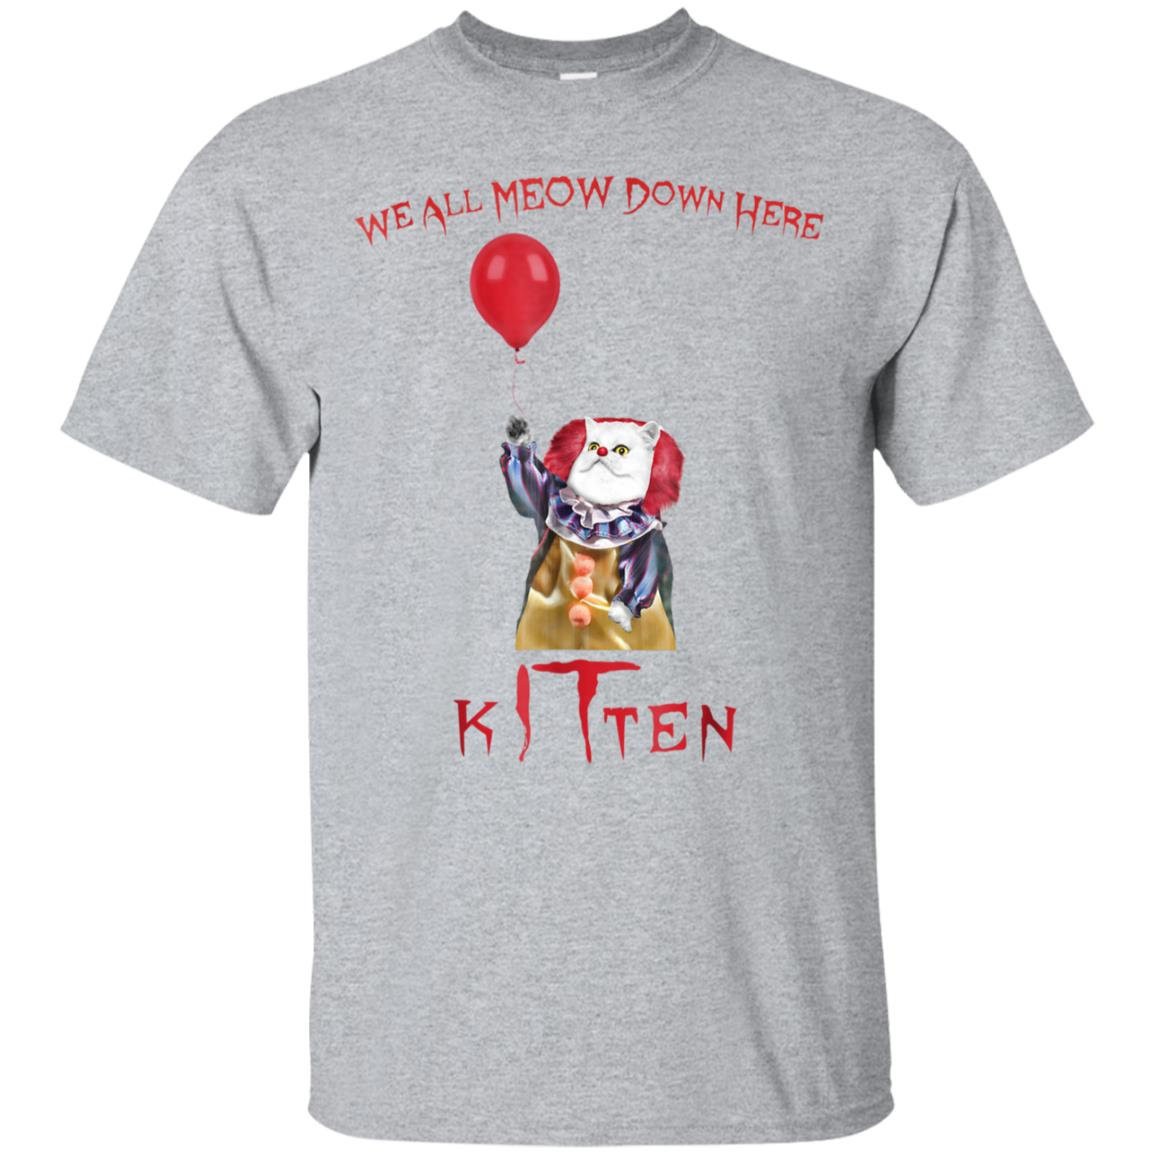 We All Meow Down Here Clown Cat Kitten Shirt 99promocode